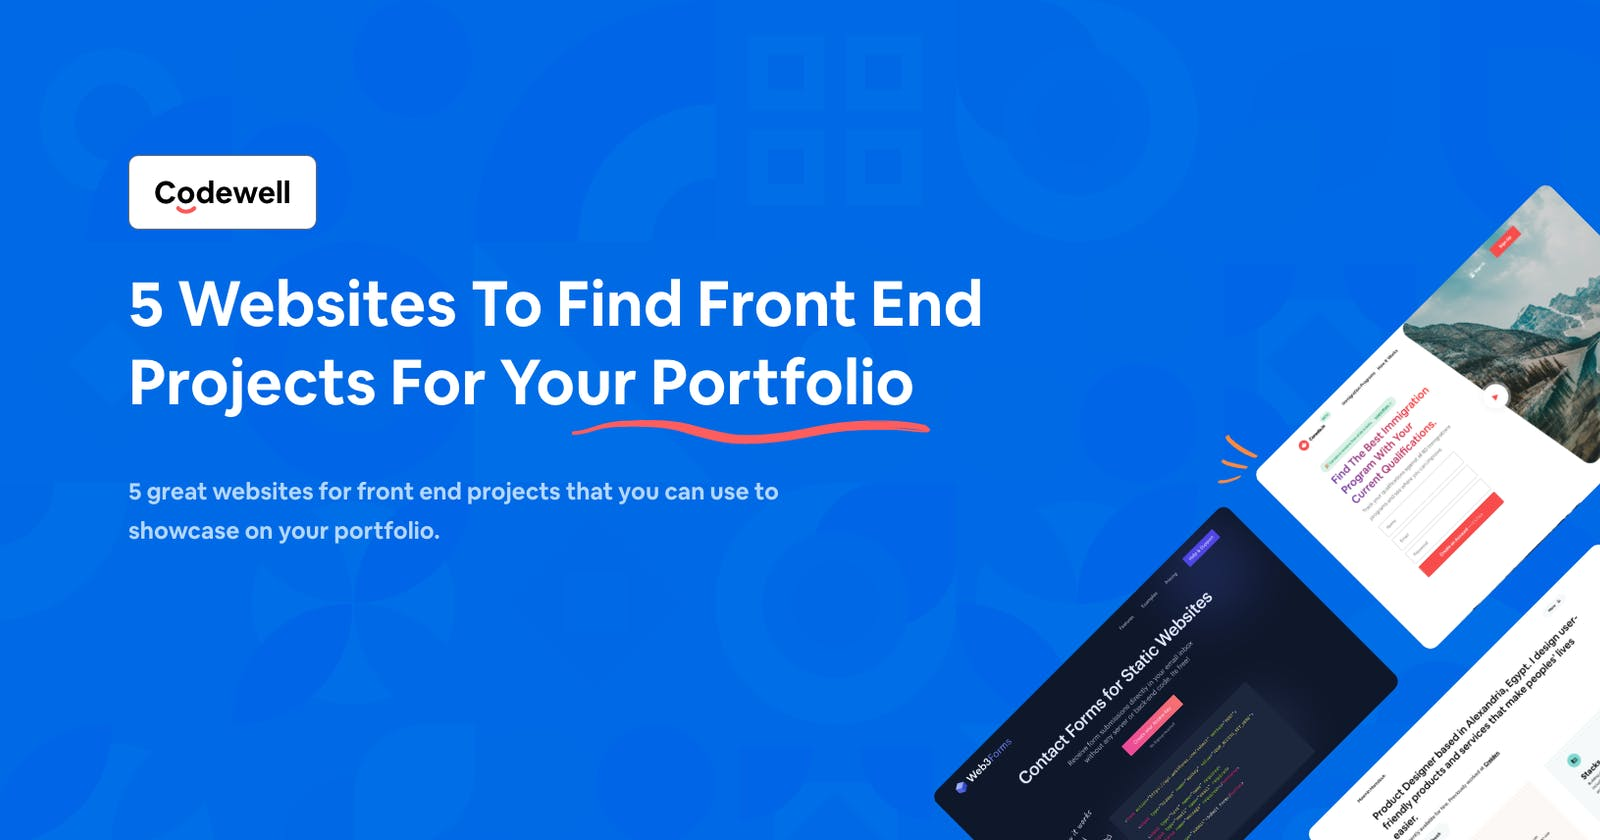 5 Websites To Find Front End Projects For Your Portfolio